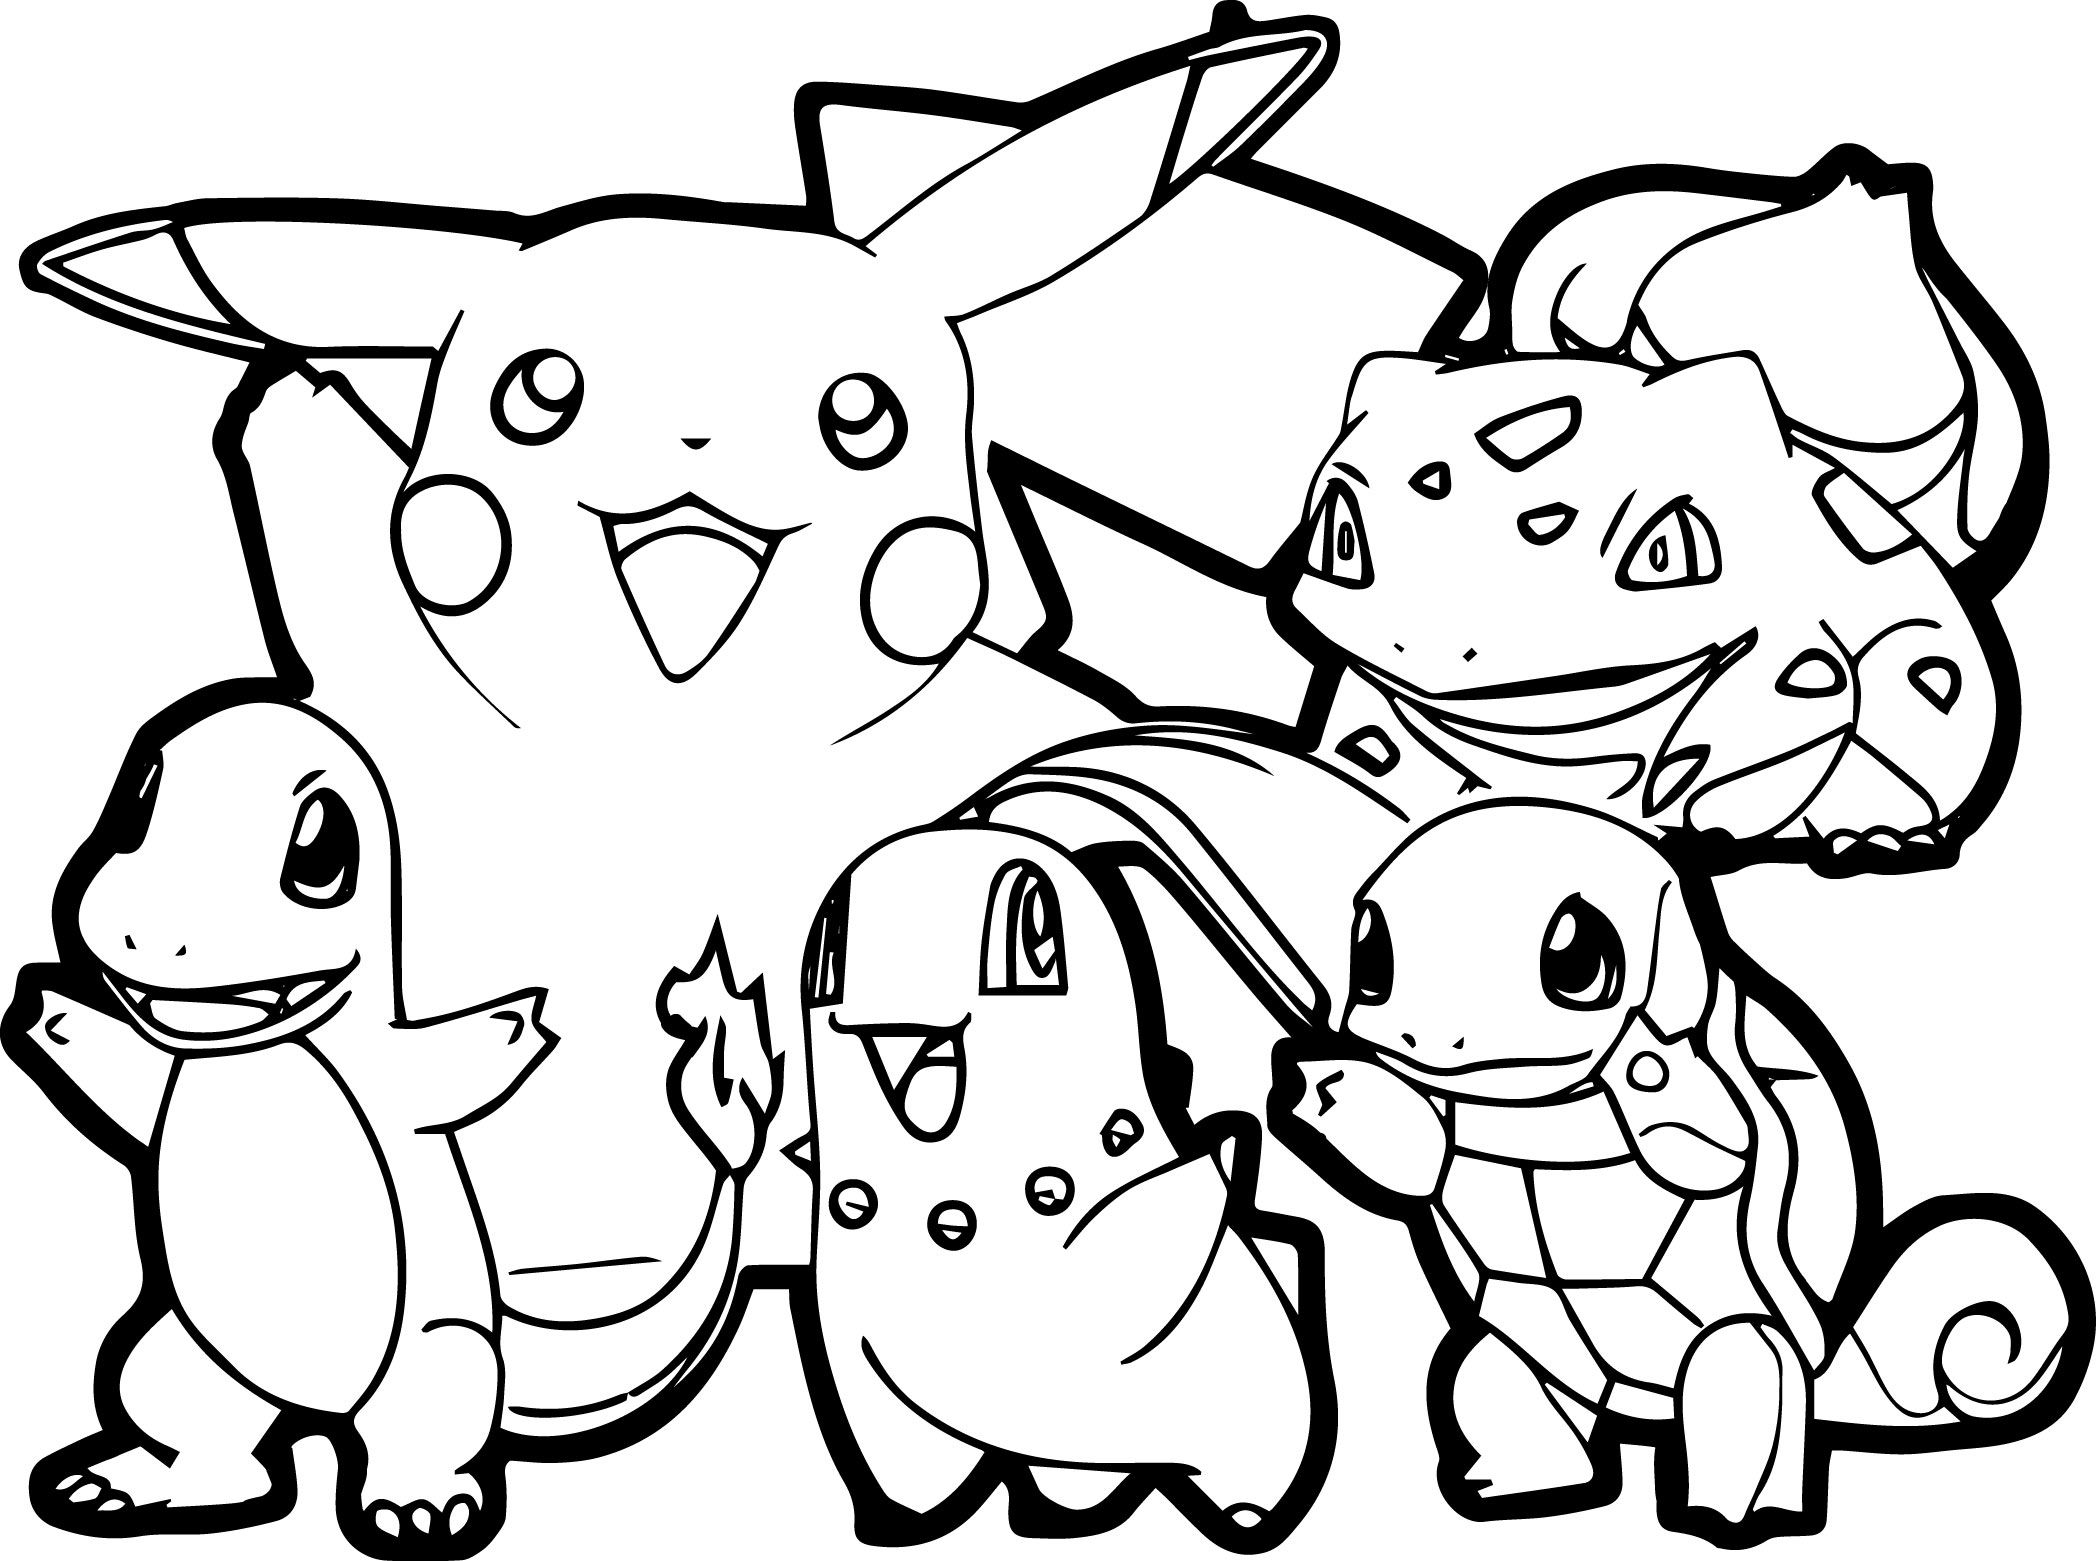 27 Inspiration Image Of Free Printable Pokemon Coloring Pages Entitlementtrap Com Pikachu Coloring Page Pokemon Coloring Pages Pokemon Coloring Sheets